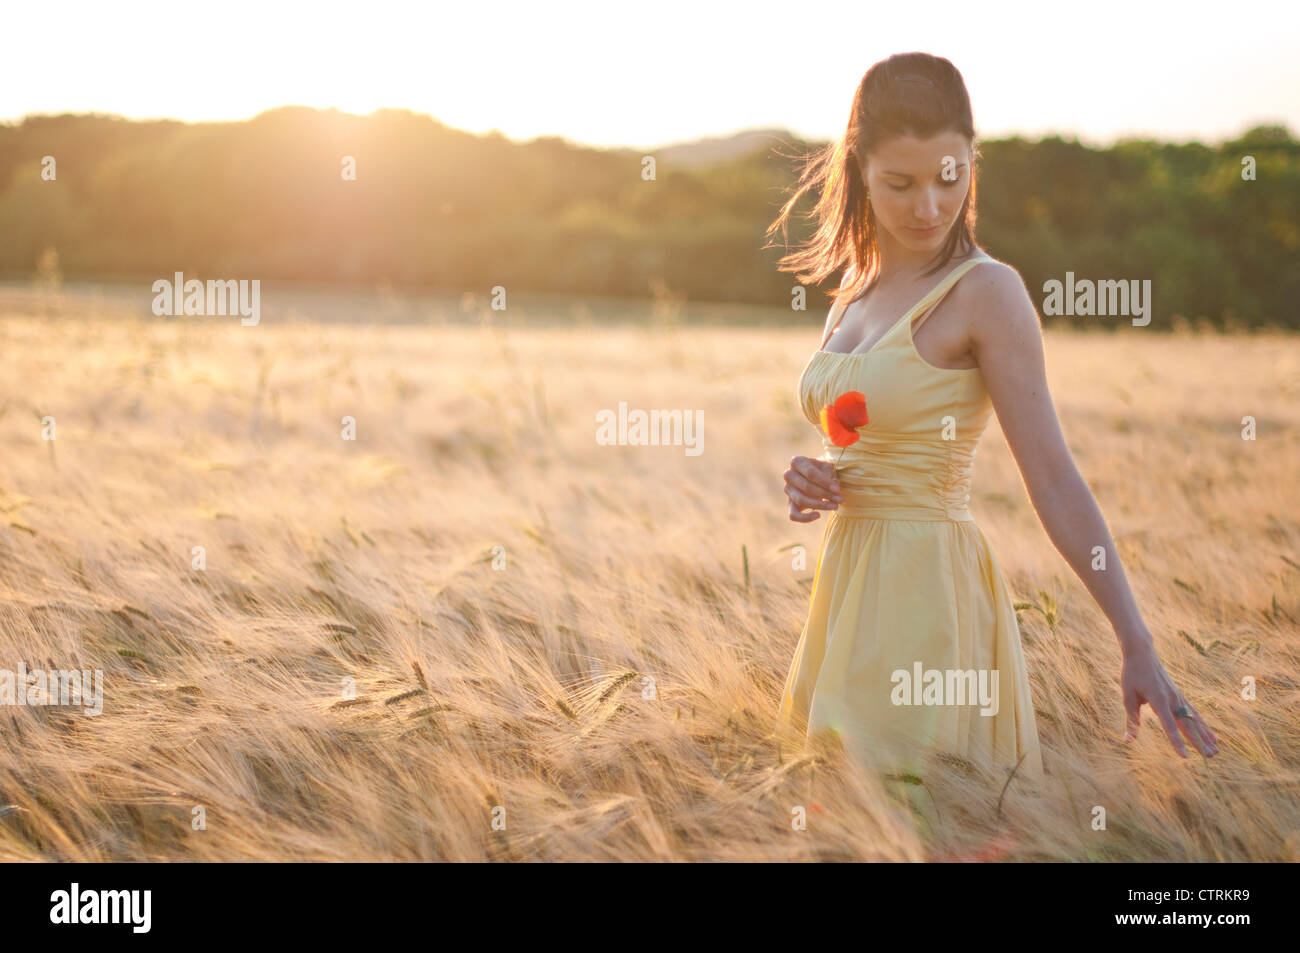 Woman walking through a wheat field, dreamily running her fingers over the wheat ears Stock Photo